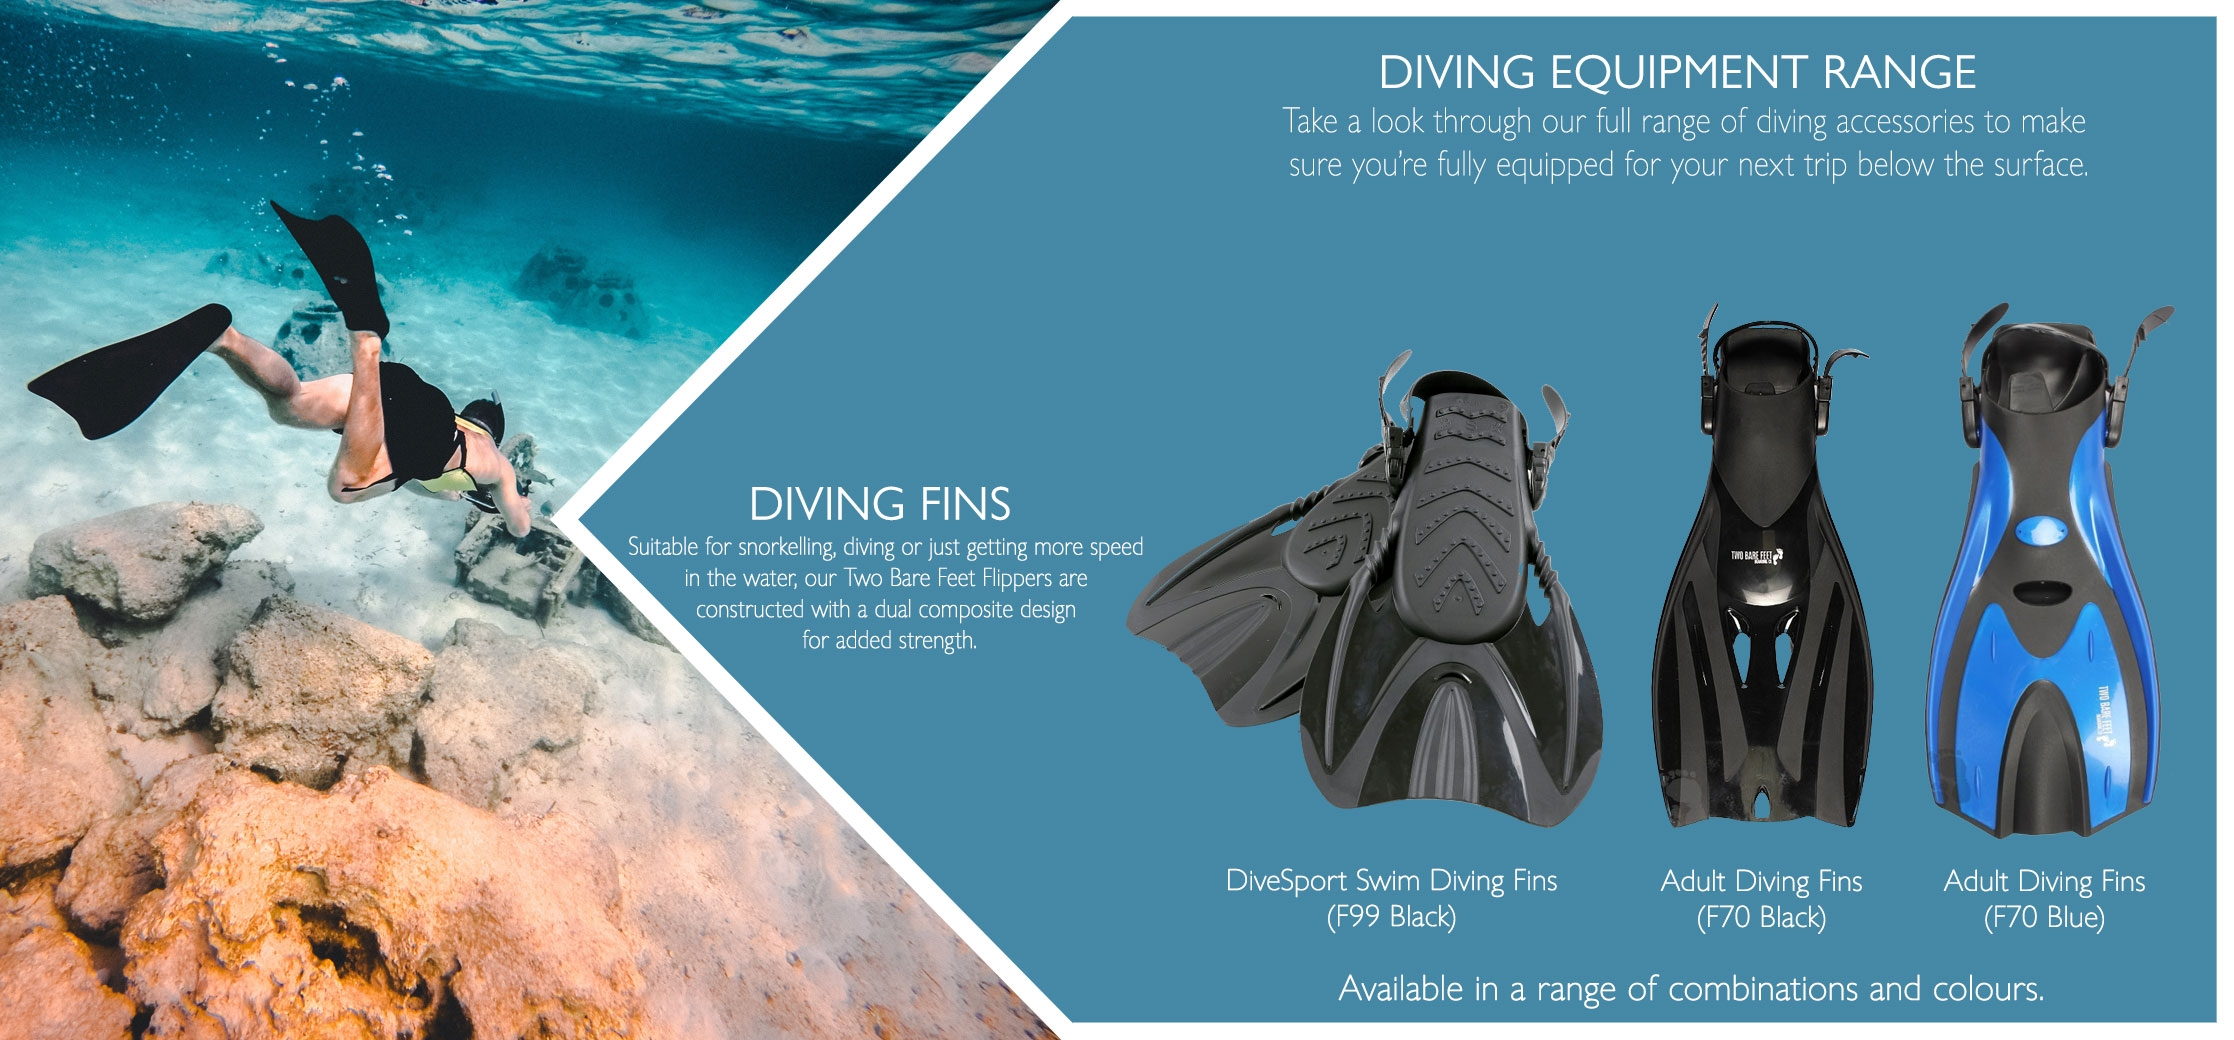 Diving Fins variations